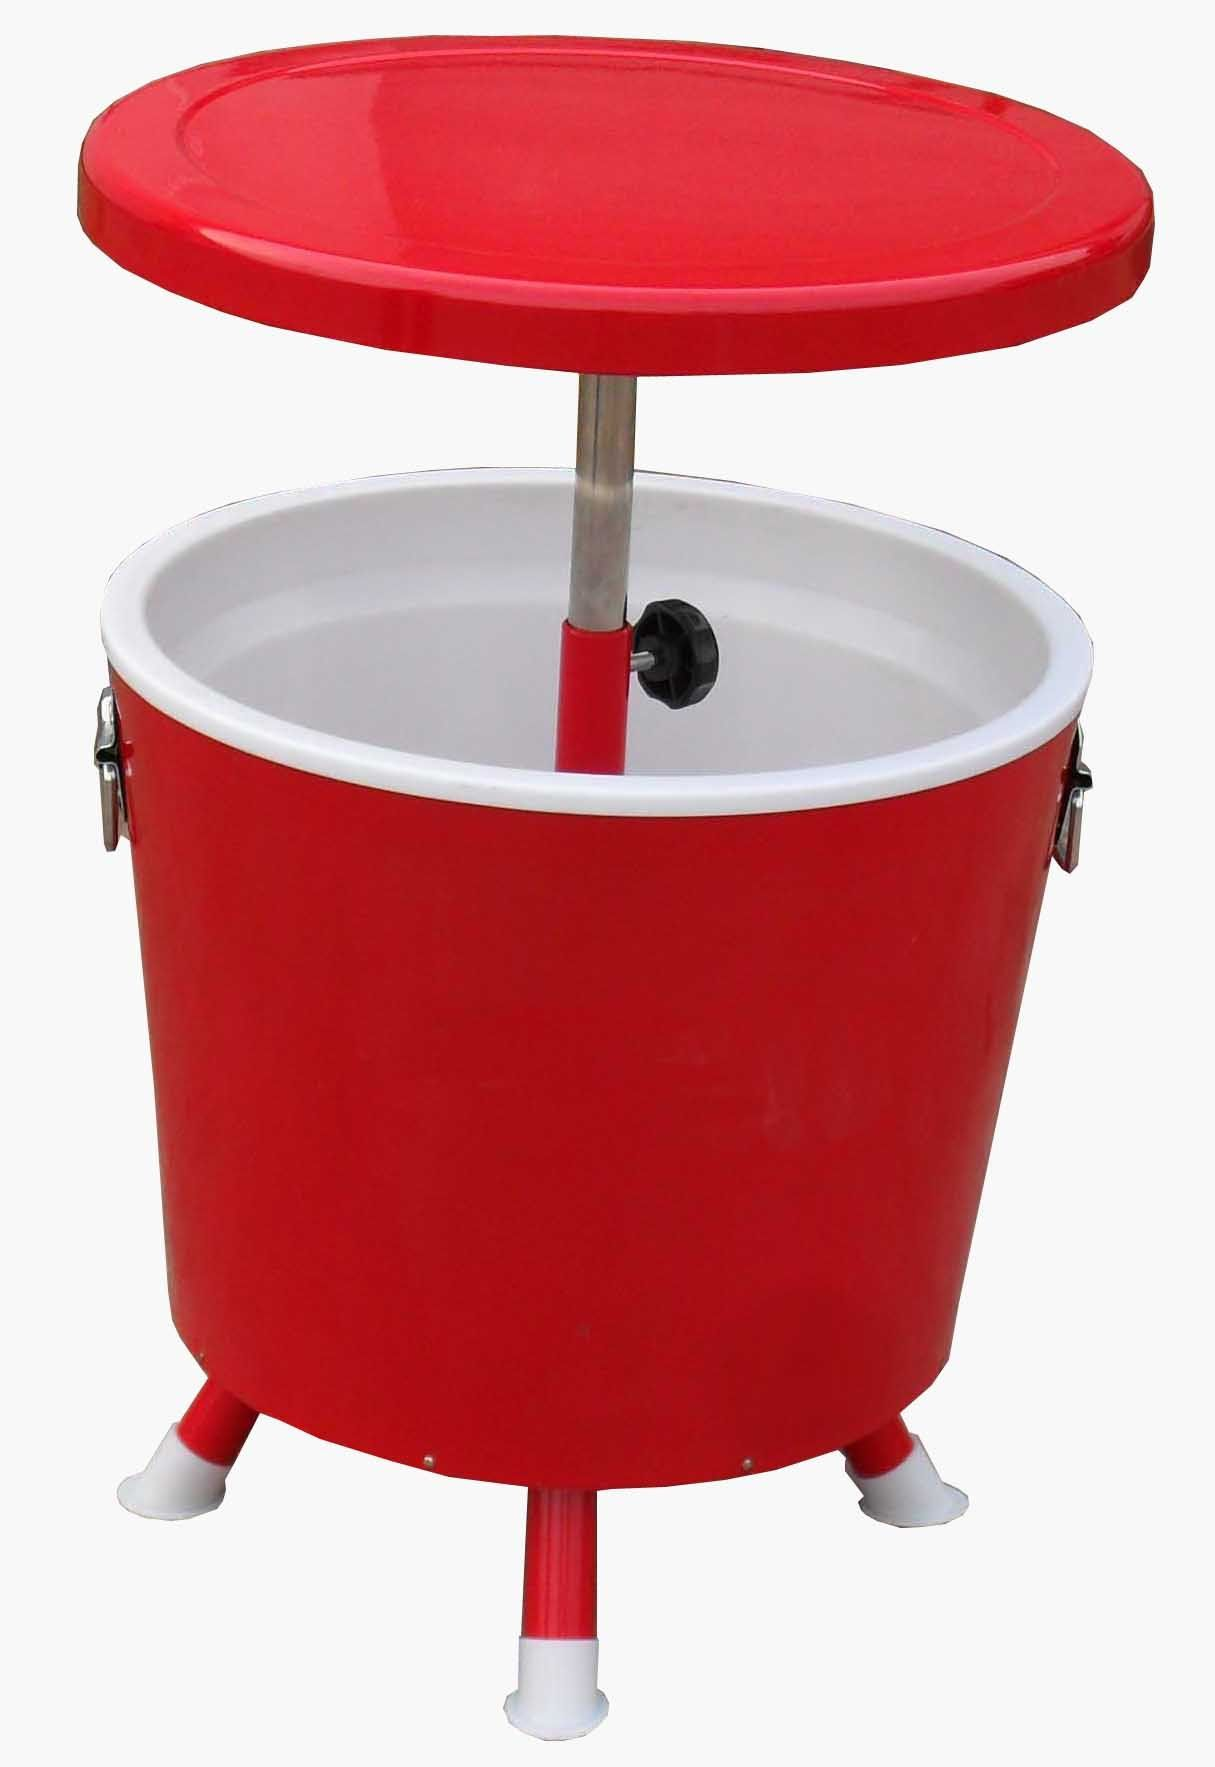 Find great deals on eBay for coolers ice tables. Shop with confidence.